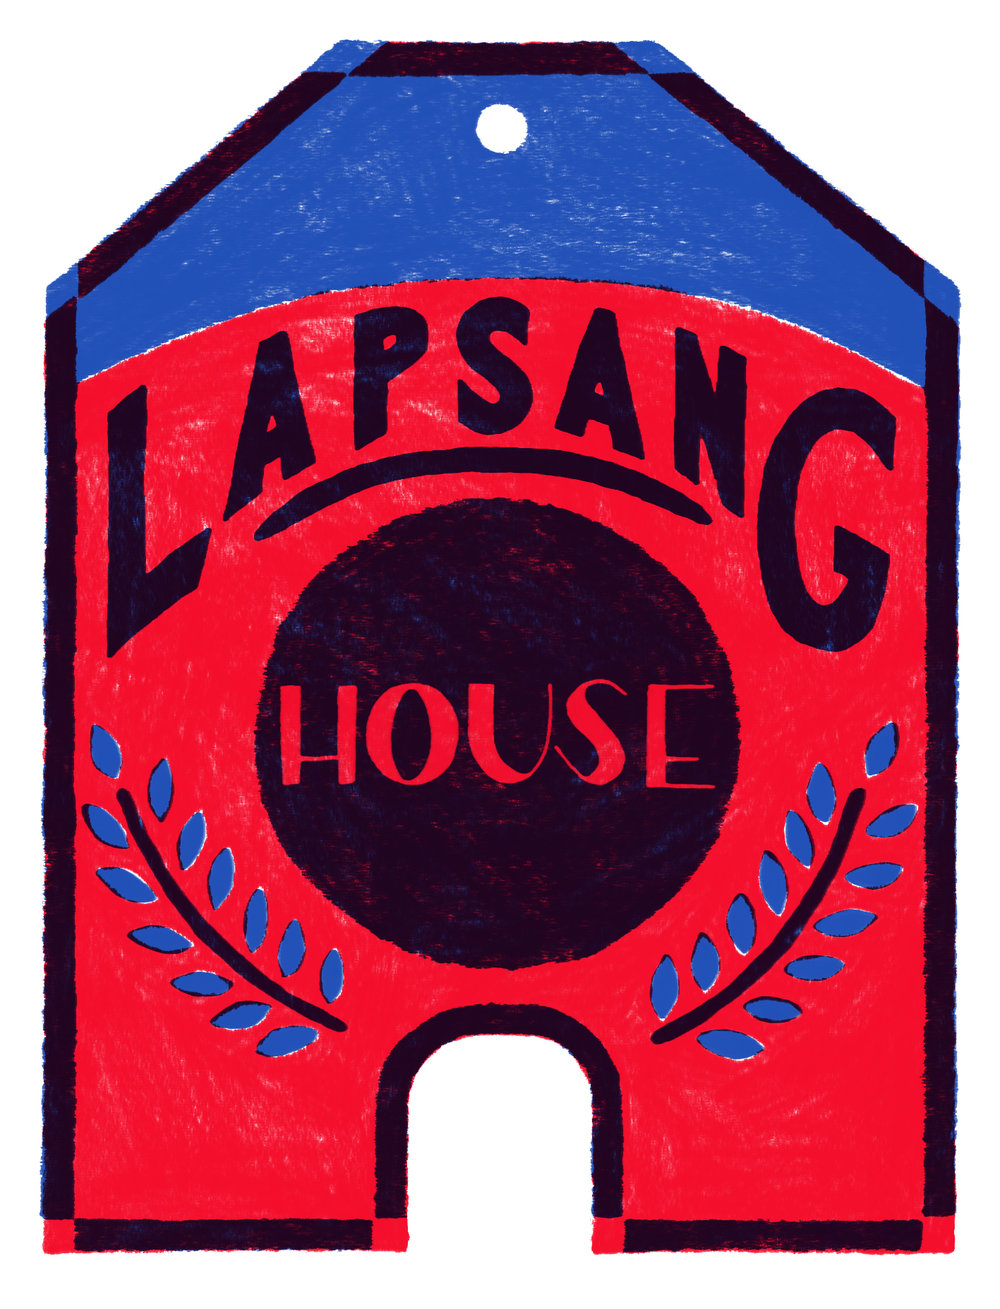 Lapsang House logo_red and blue.jpg